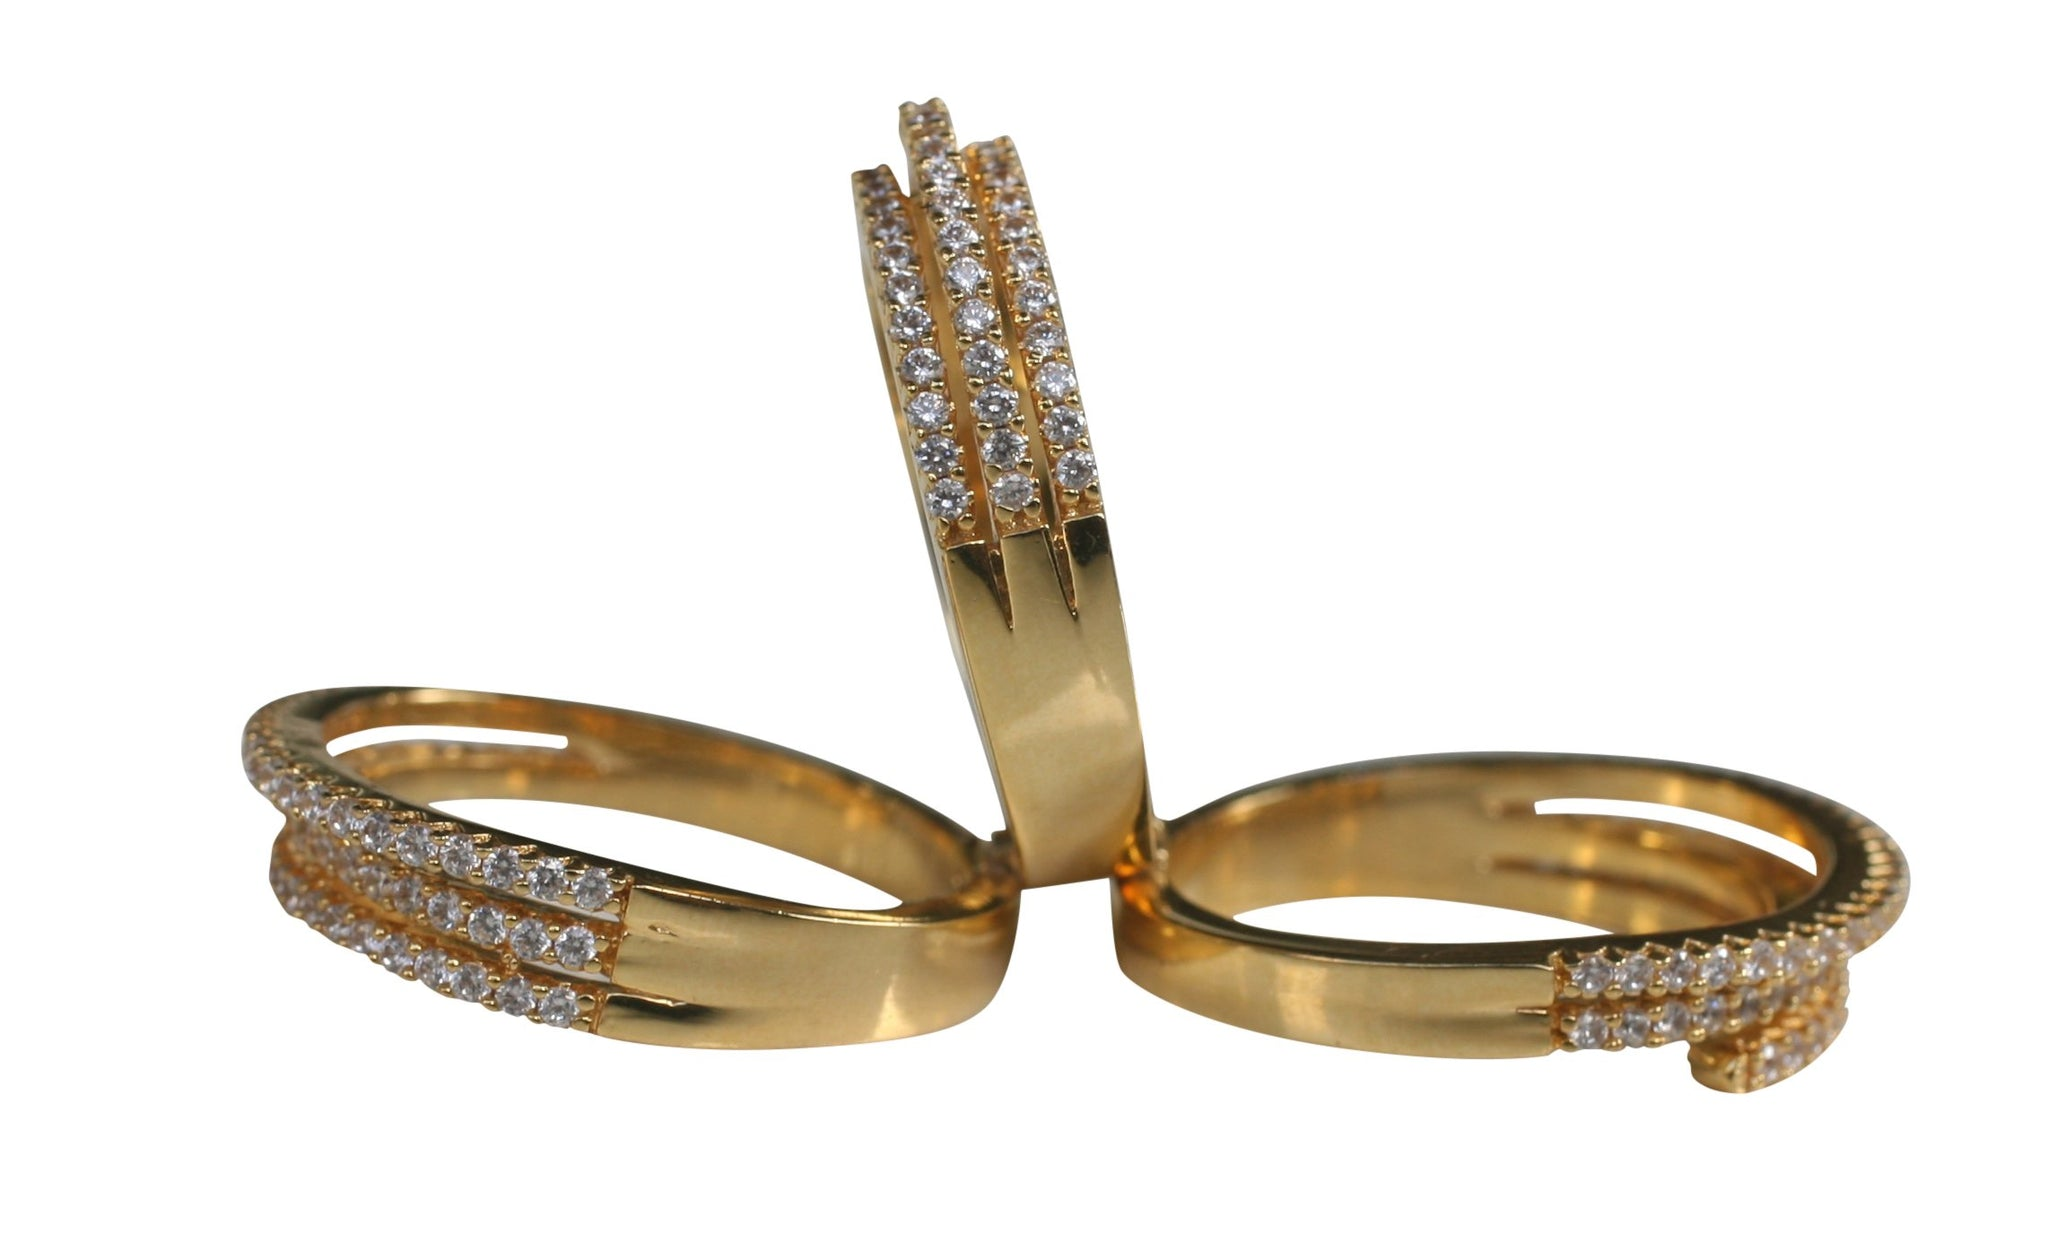 Electroplated Pave Three Tier Hinge Connected Stackable Rings 666R2056